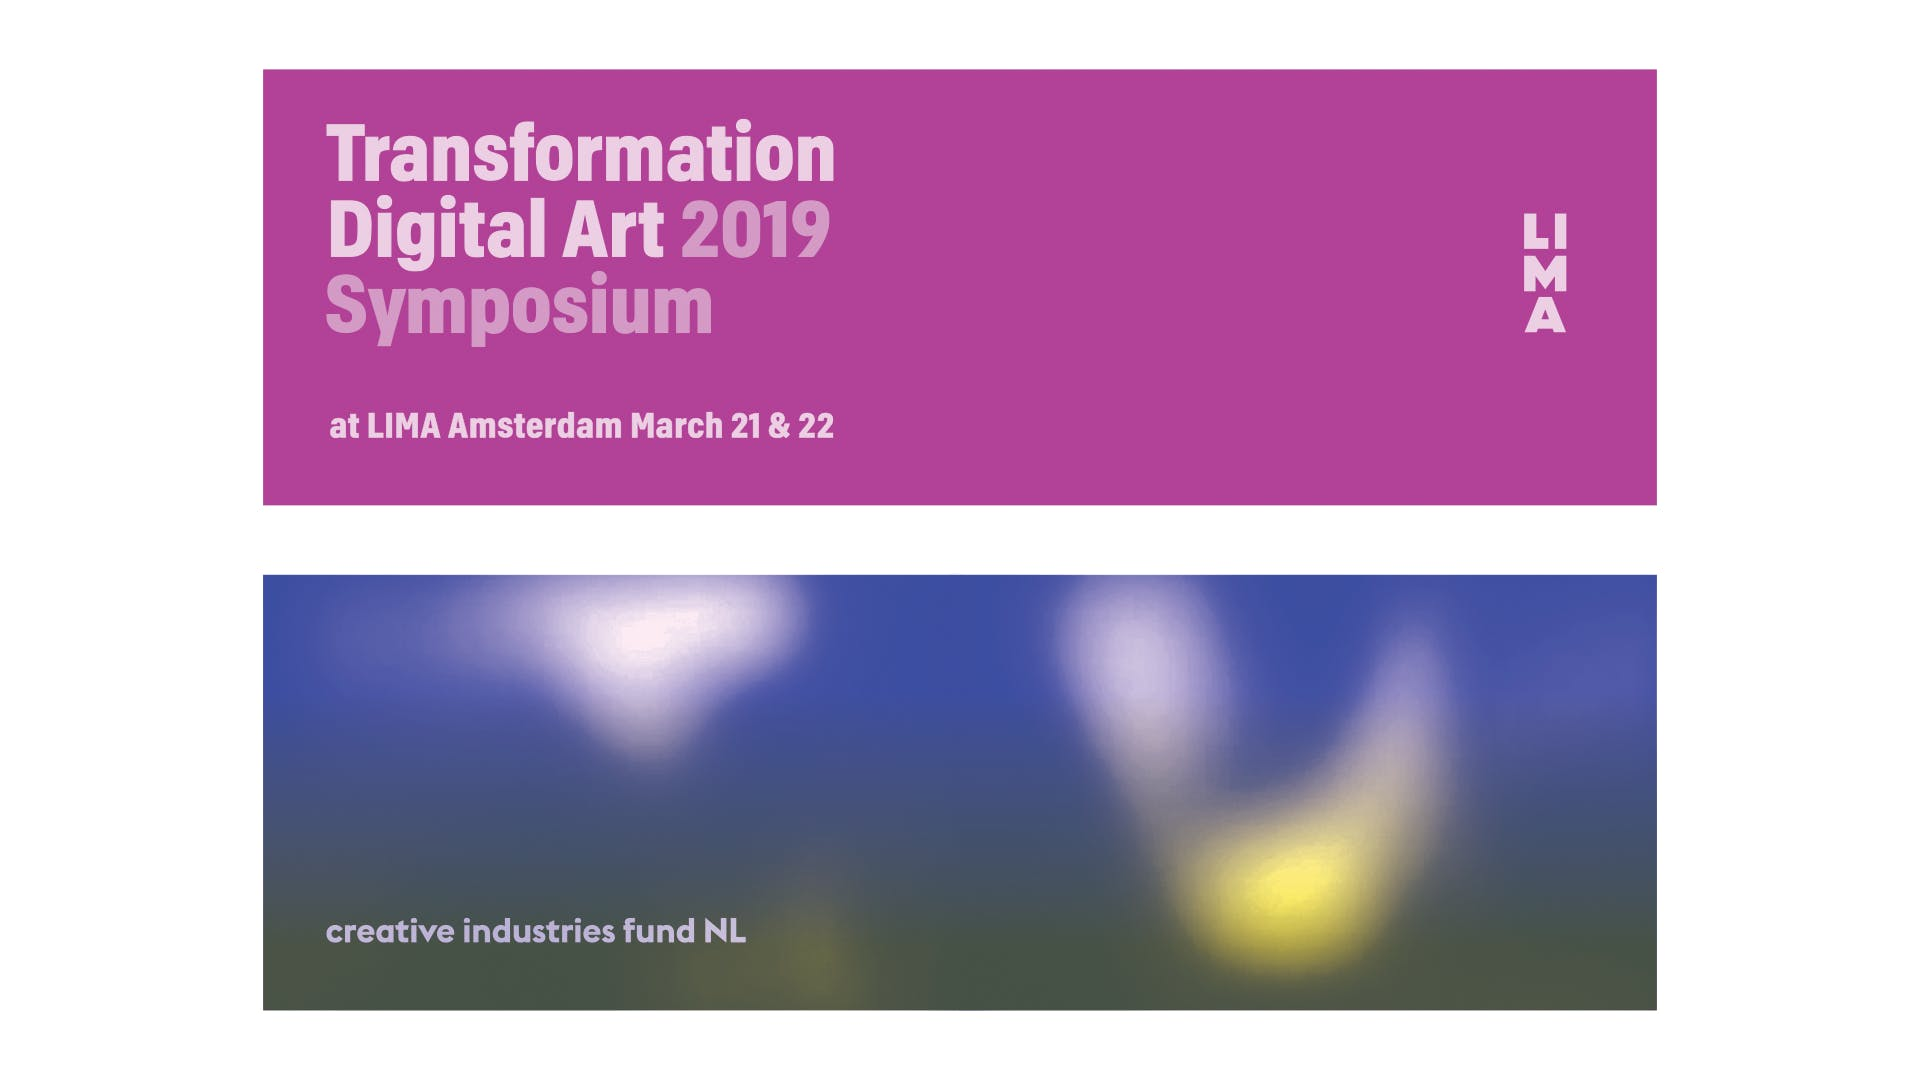 Transformation Digital Art Symposium 2019